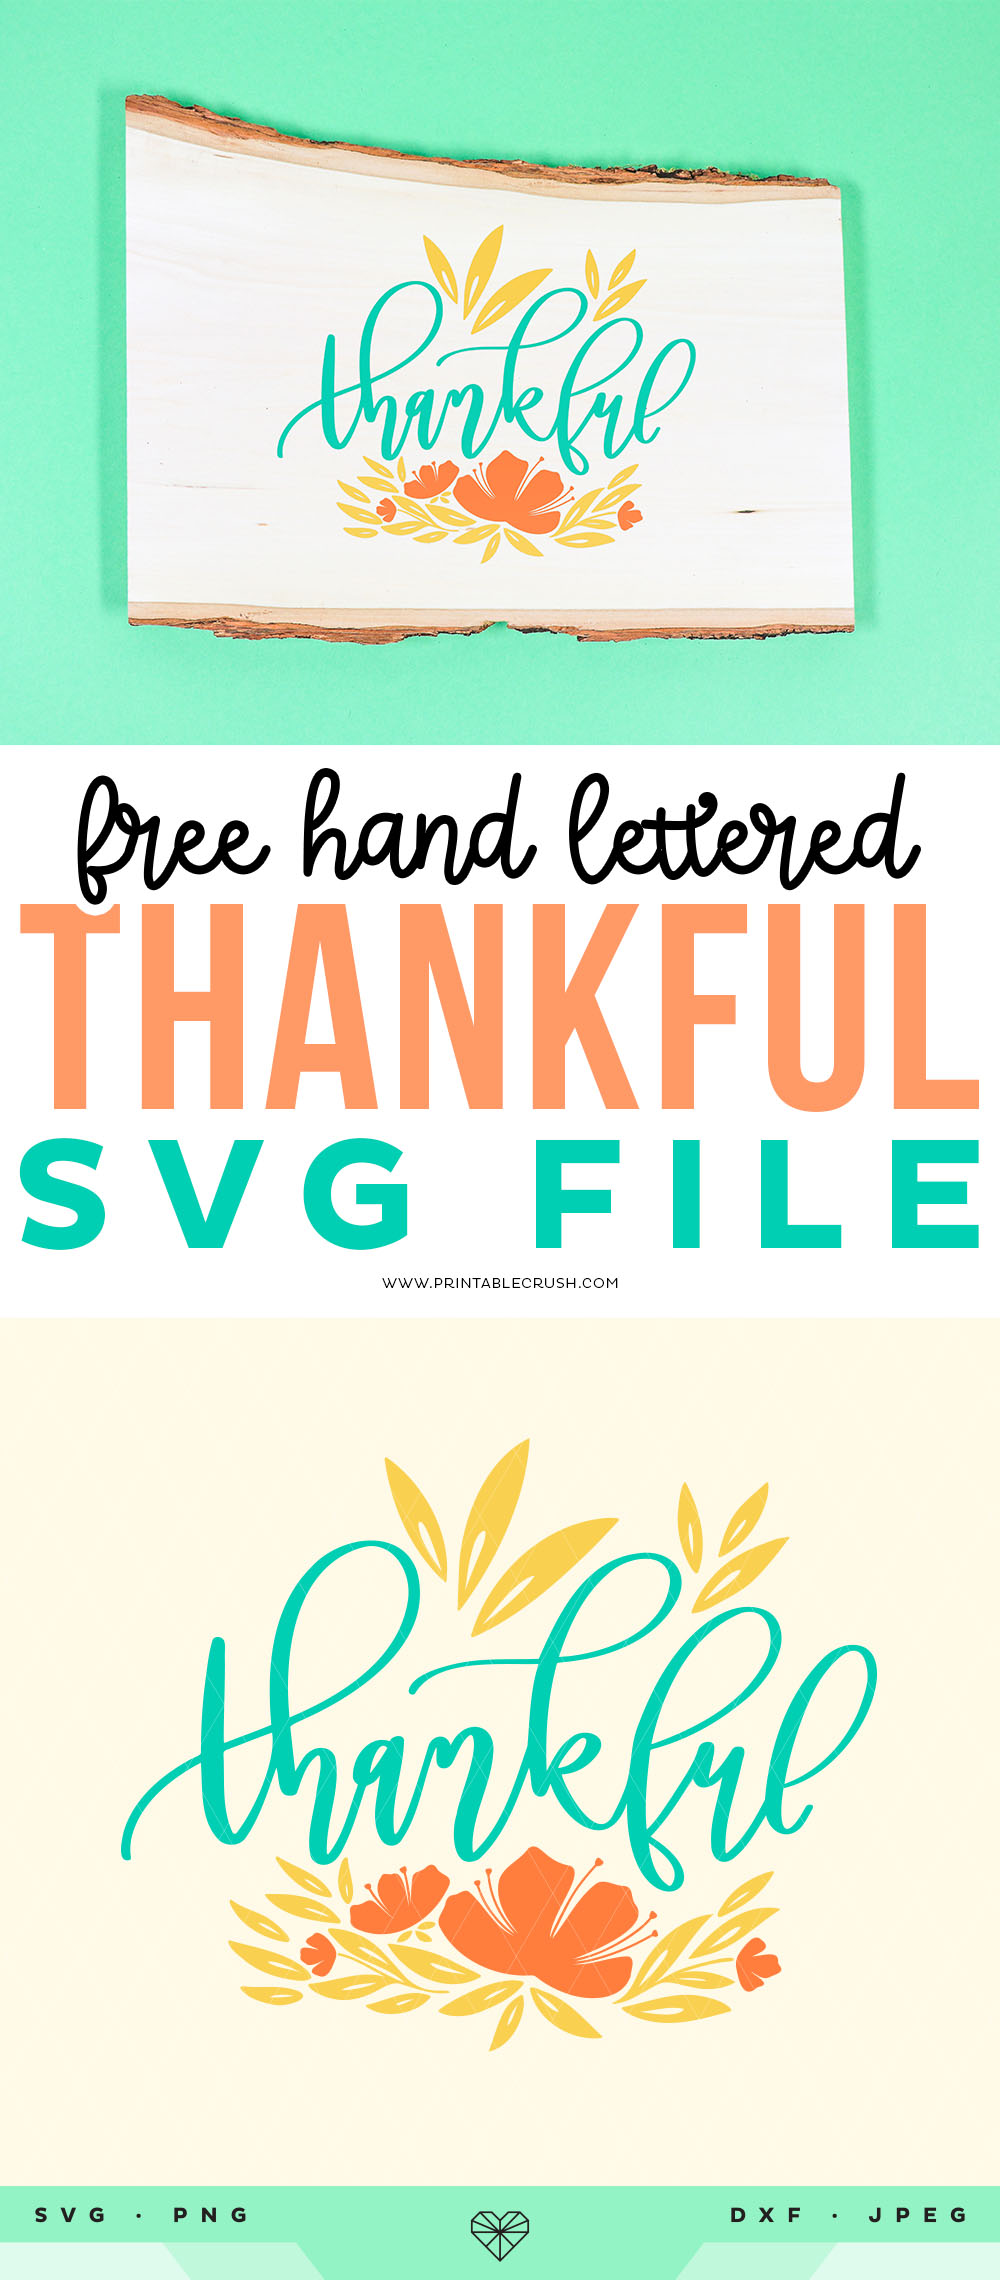 Free Thanksgiving SVG File - Thankful SVG File - Thankful Wood Sign - Printable Crush